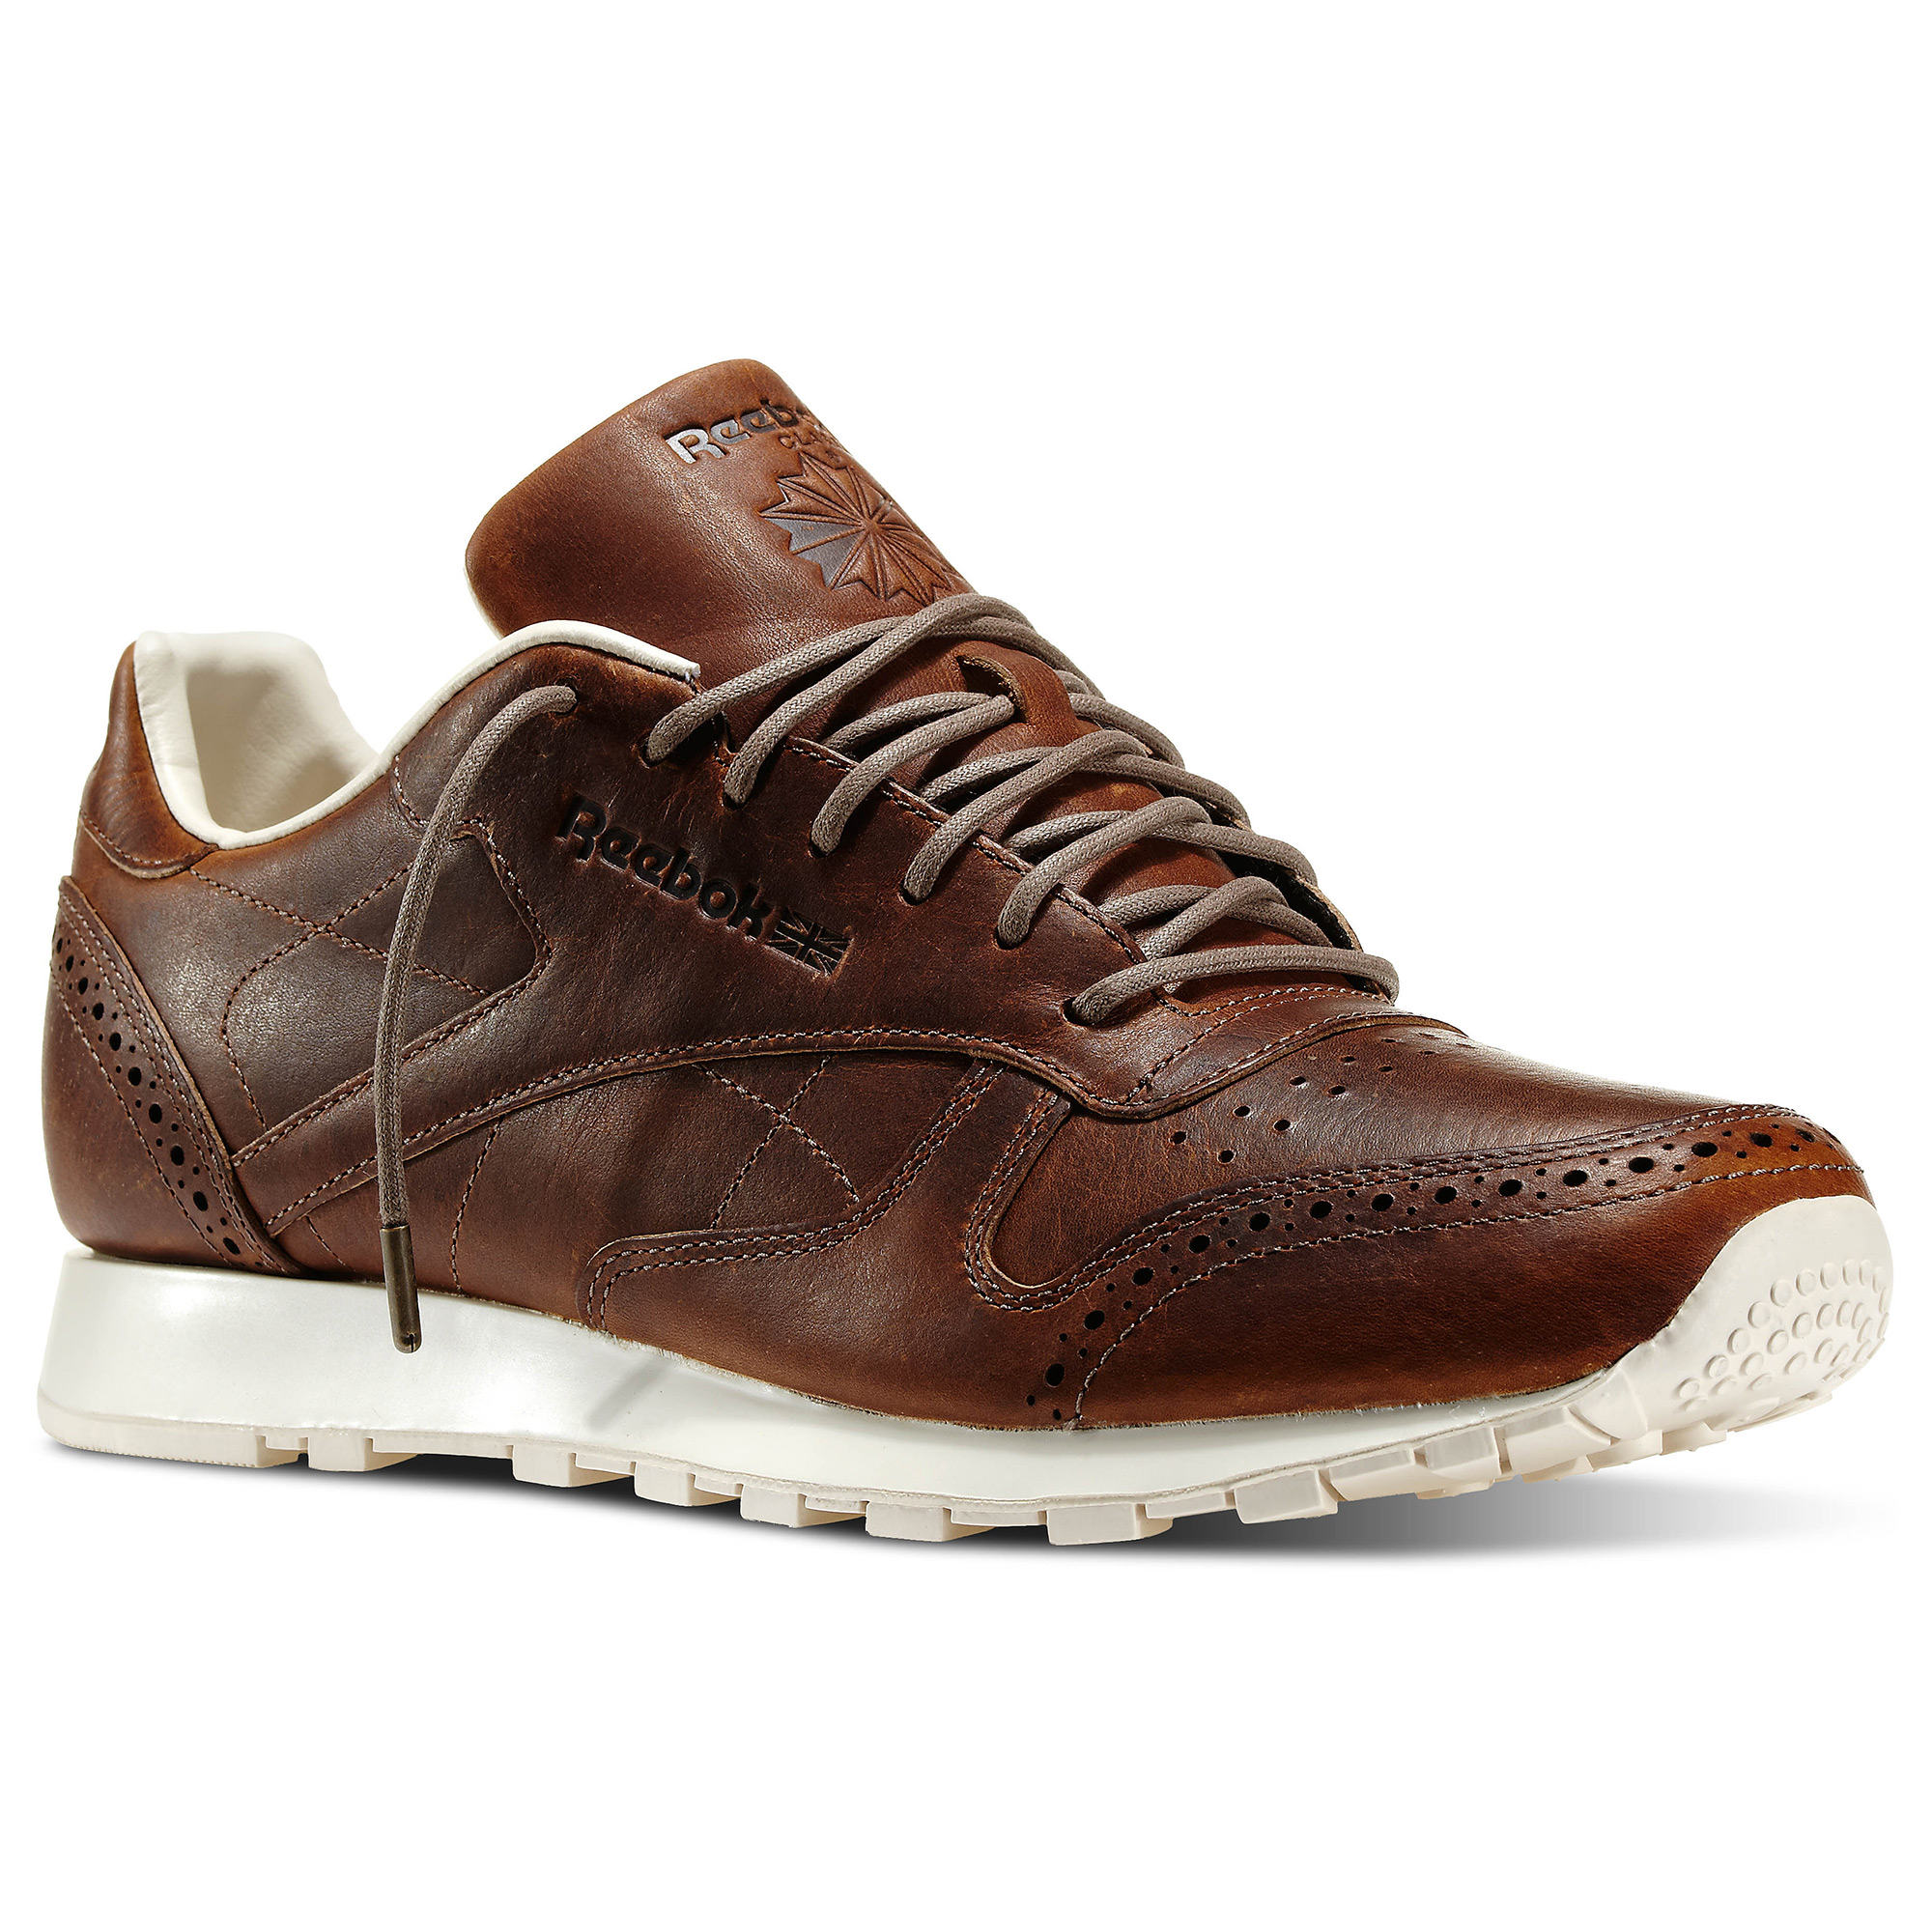 3fb7cf6aef190 Reebok Classic Leather Lux - Brown